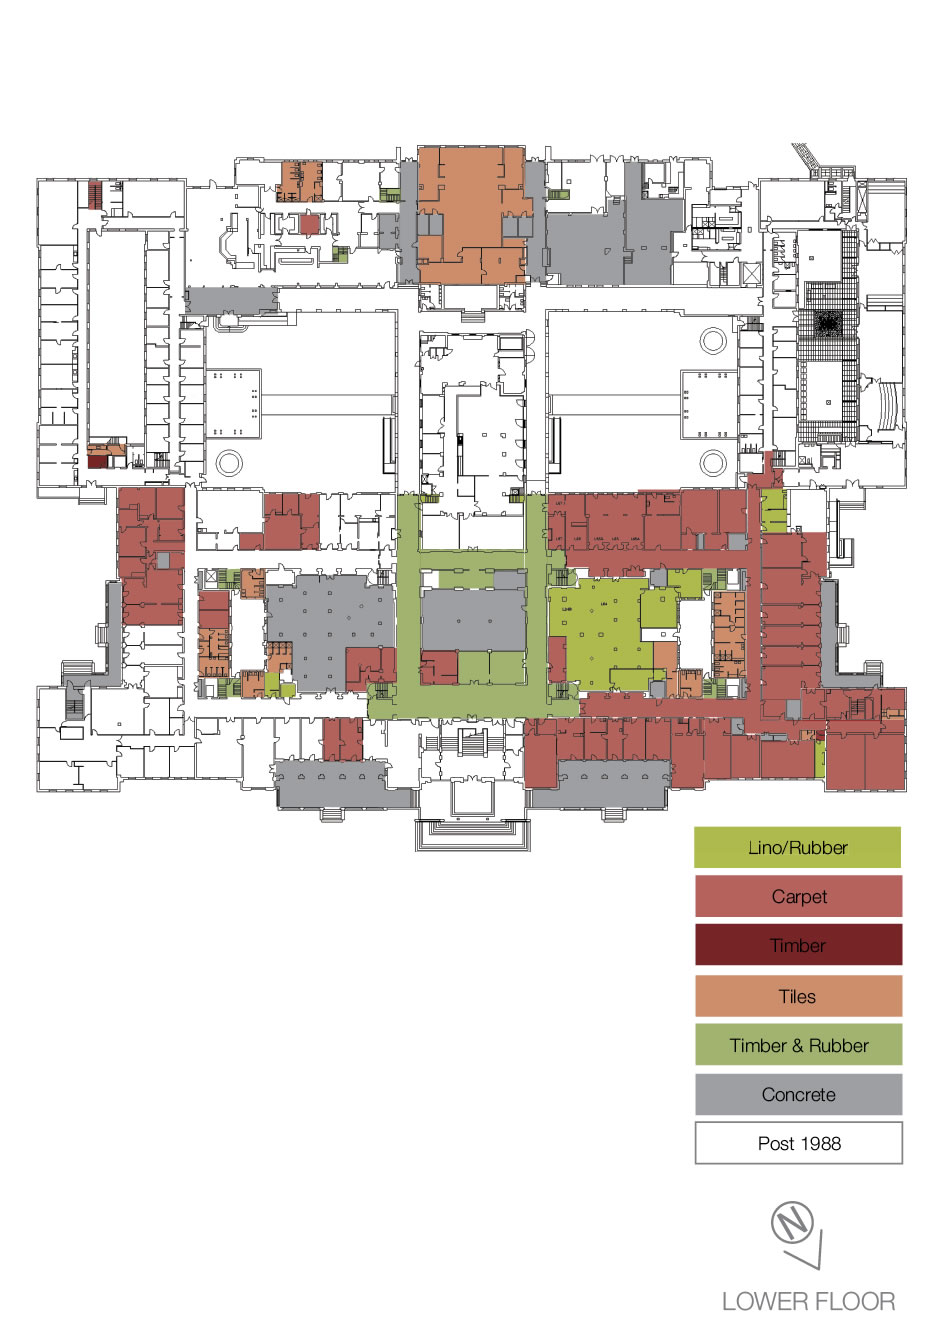 Floorplan showing the types of heritage floor coverings on the lower floor.